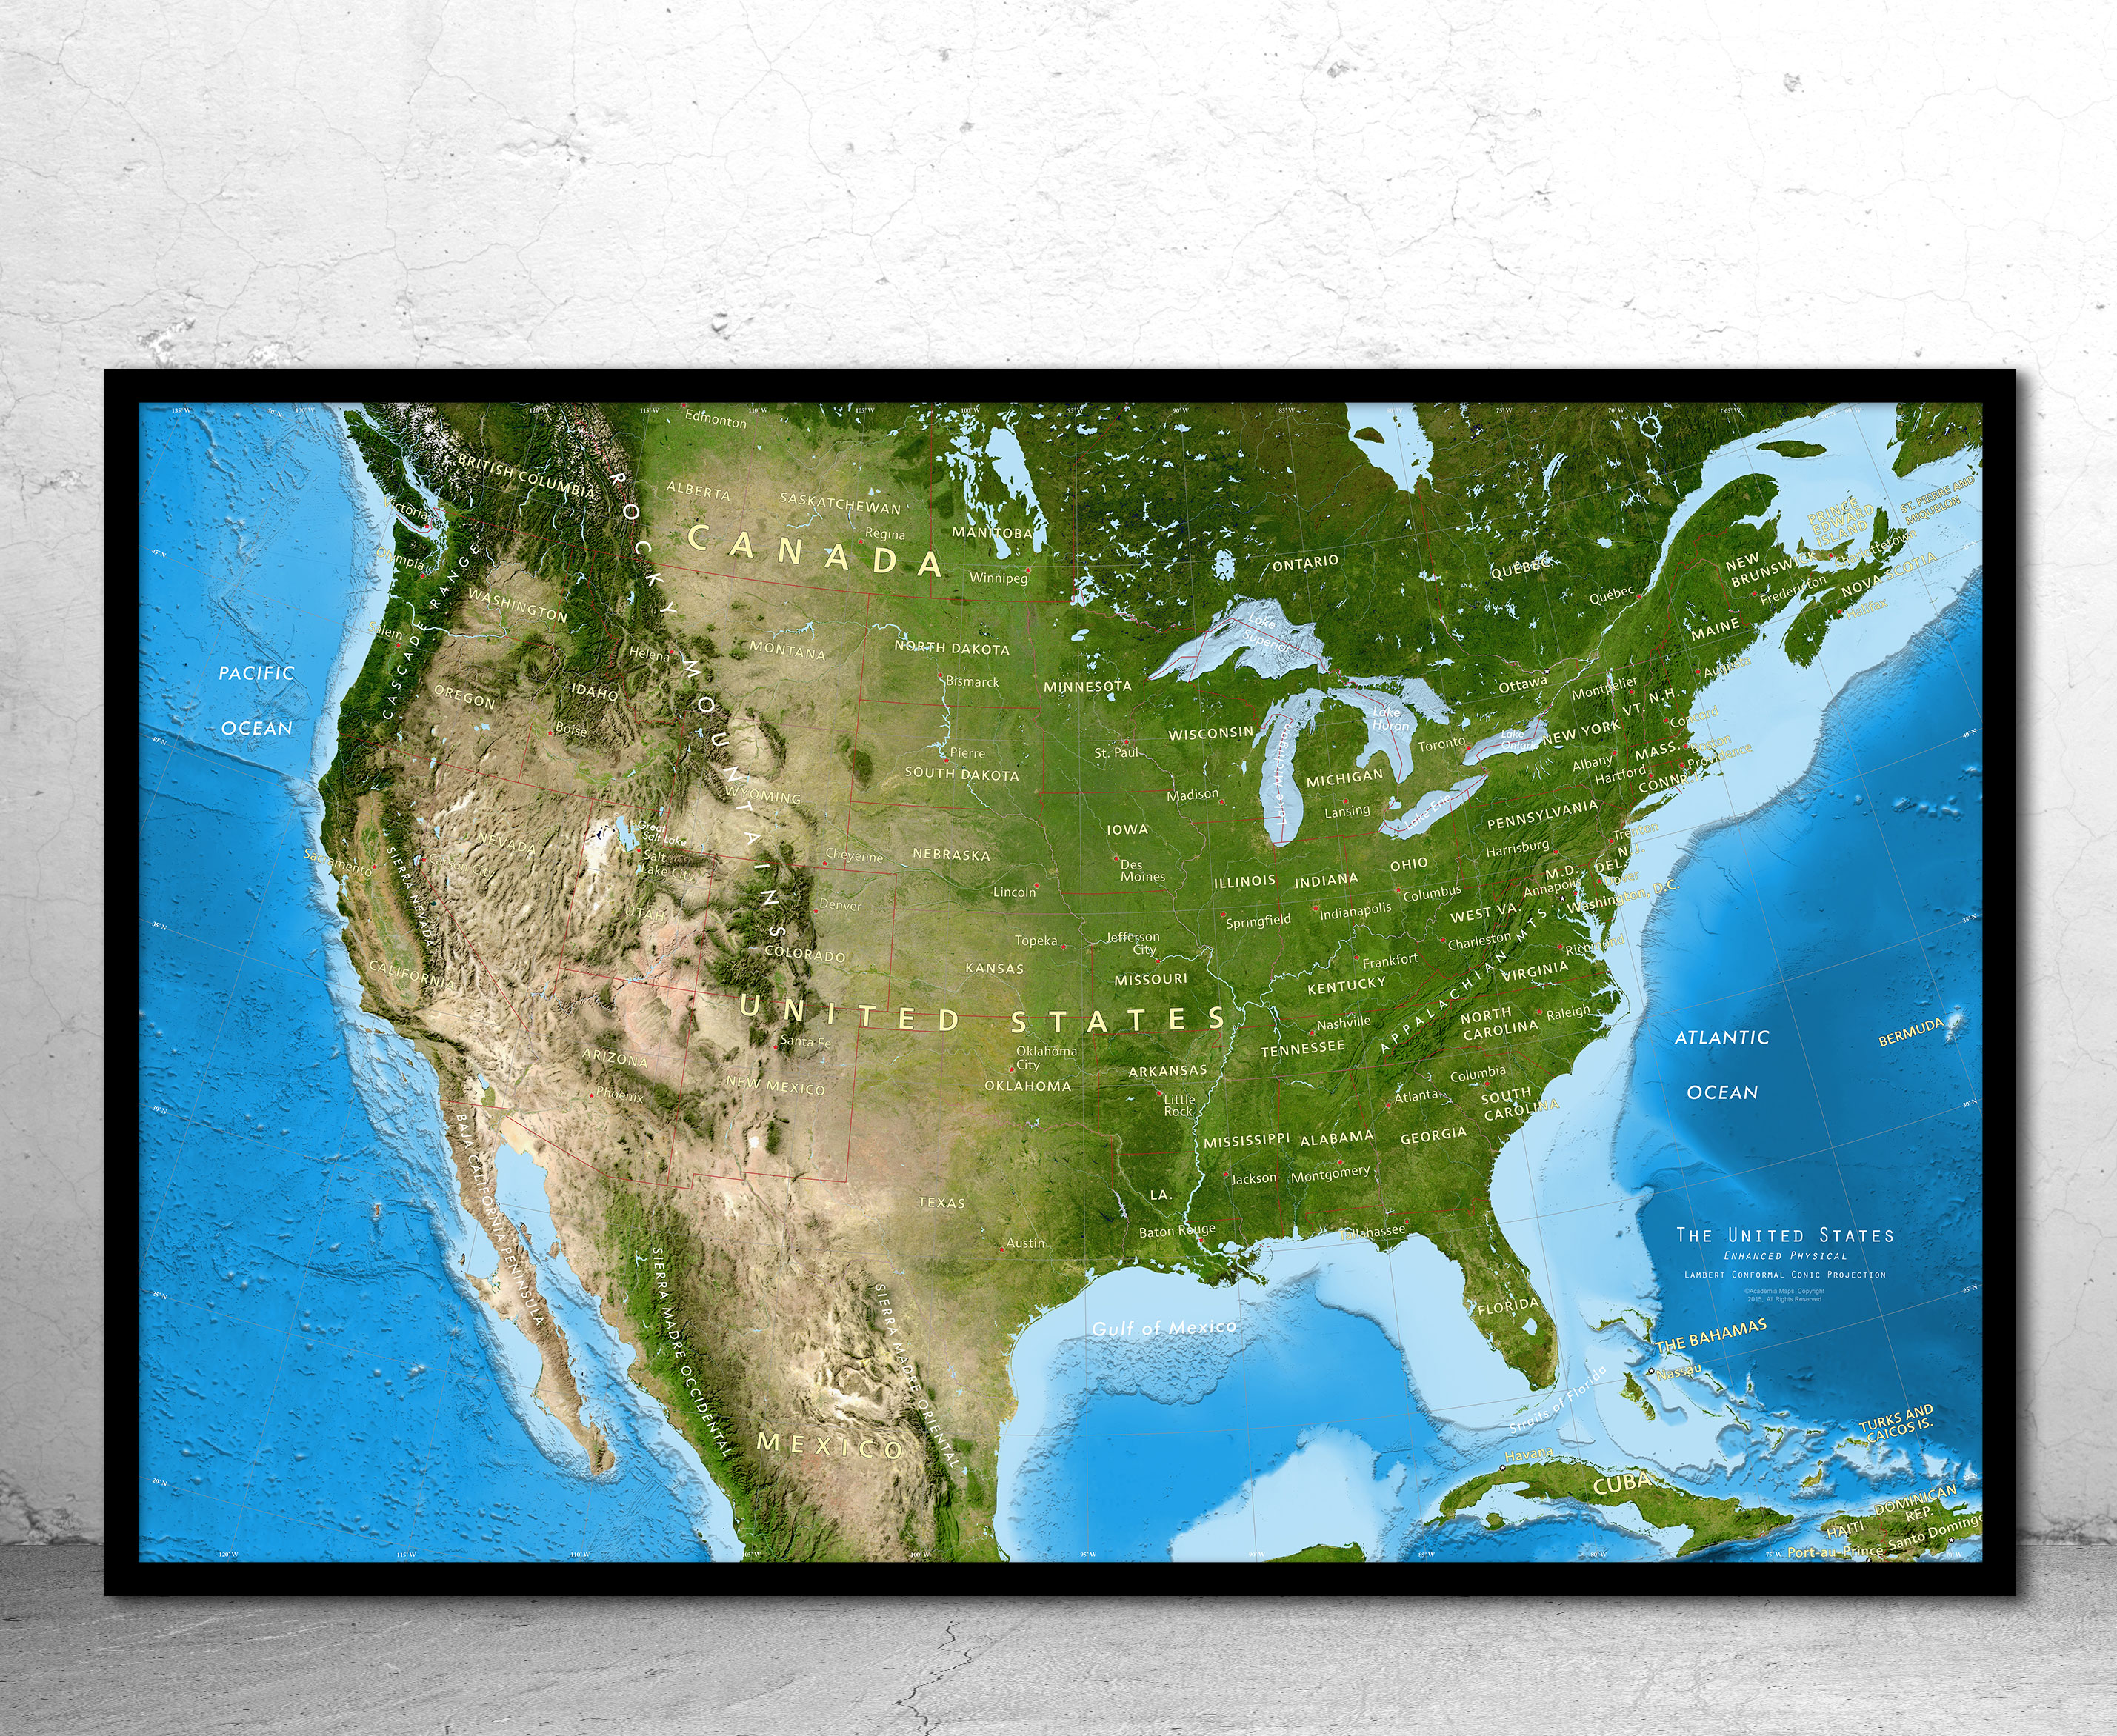 The map legend often also has a scale to help the map reader gauge dista. United States Satellite Image Giclee Print Enhanced Physical Photo Paper Canvas Metal Print